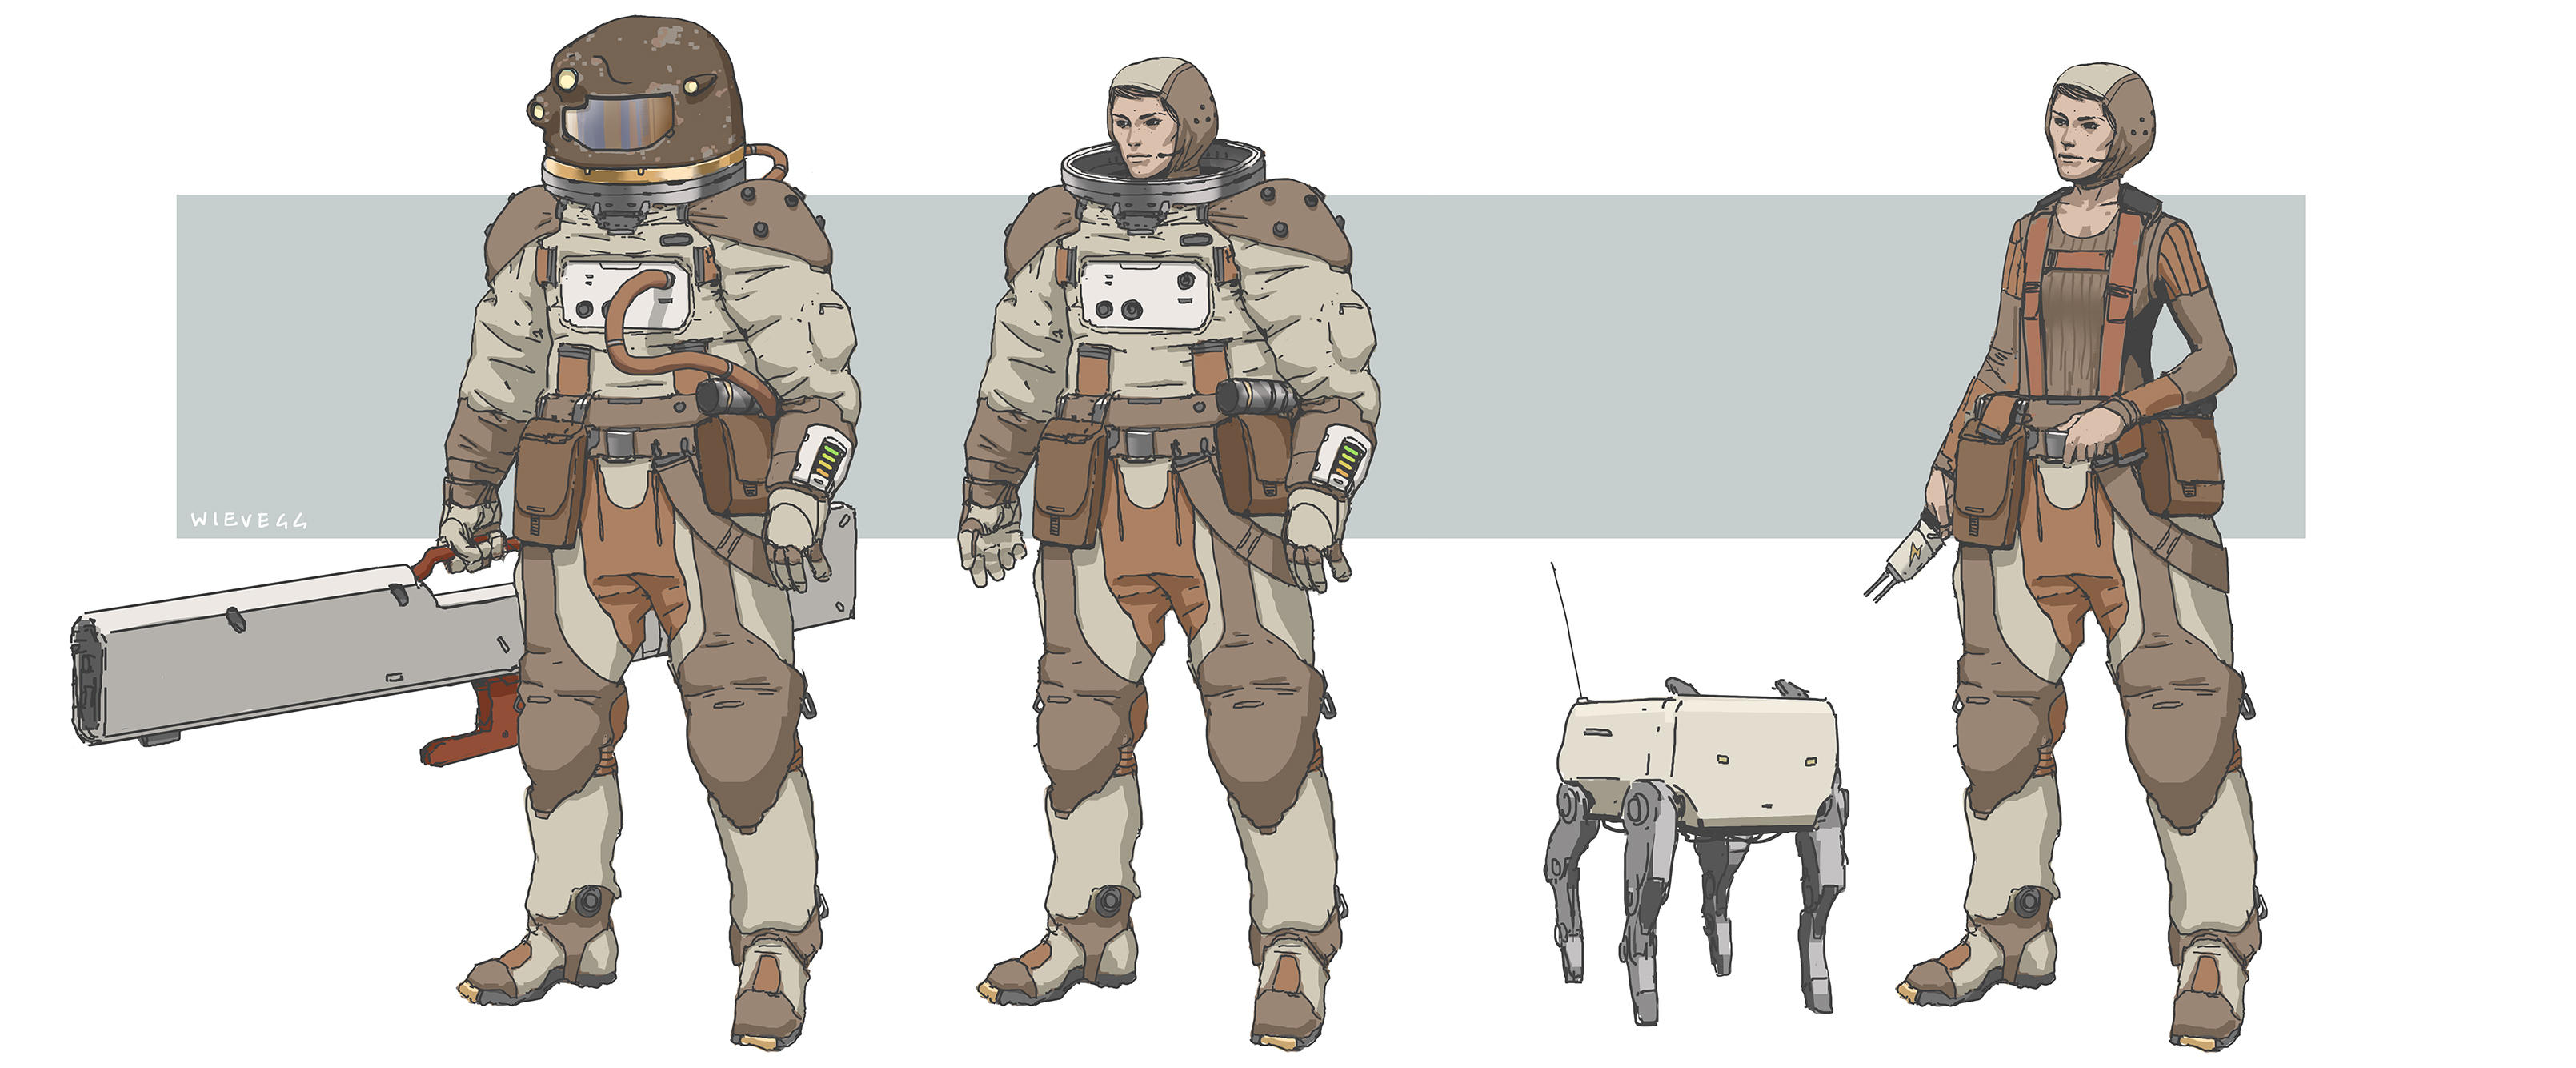 space suit character concept by thomaswievegg